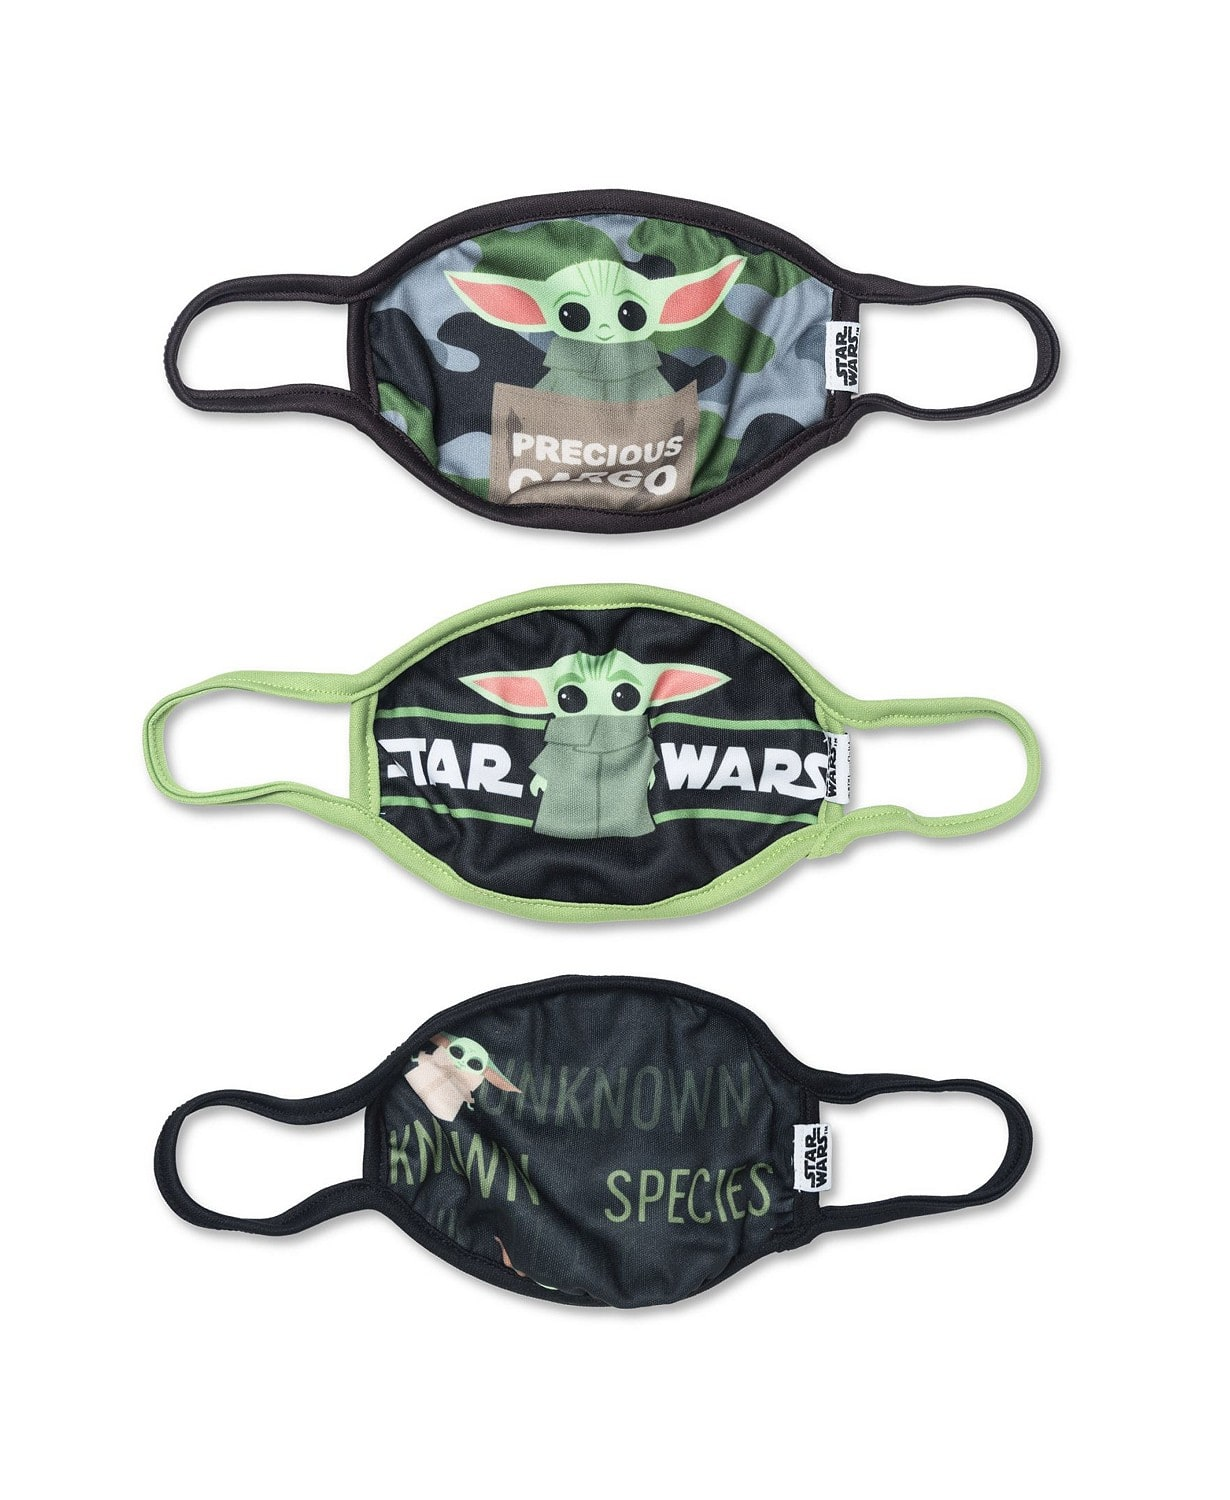 3-Count Disney Kids' Face Coverings $10 ($3.33 per mask, Star Wars, Marvel, Princess, Frozen, More) + free store pickup at Macys or free ship on $25